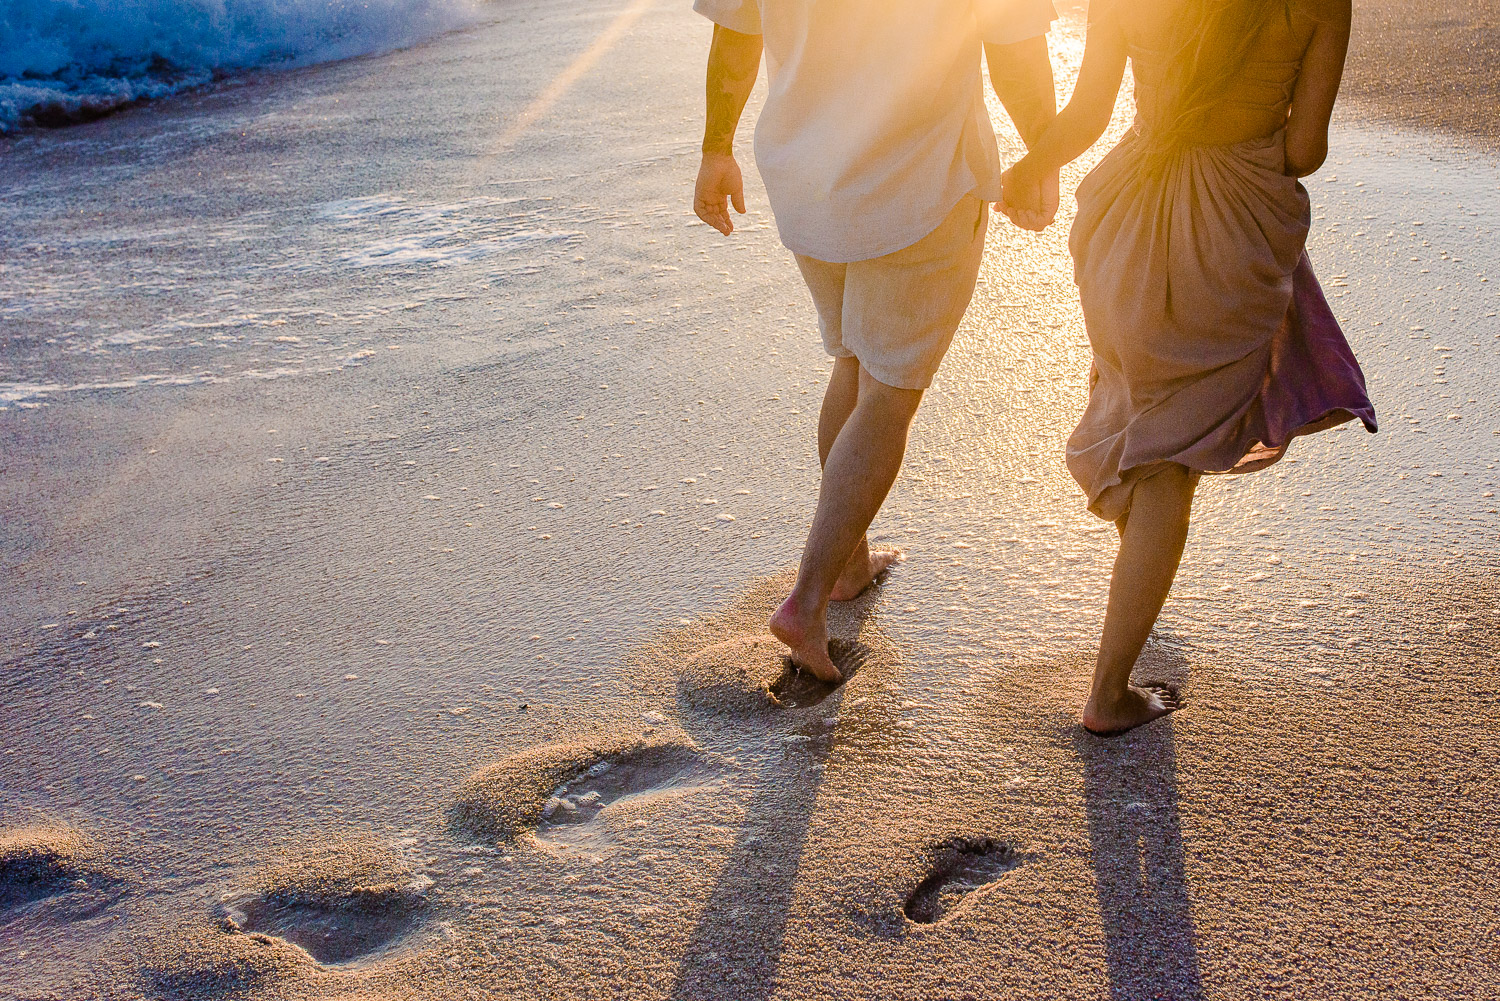 Soon to be Husband and Wife enjoy a sunset walk on a secluded Cabo beach